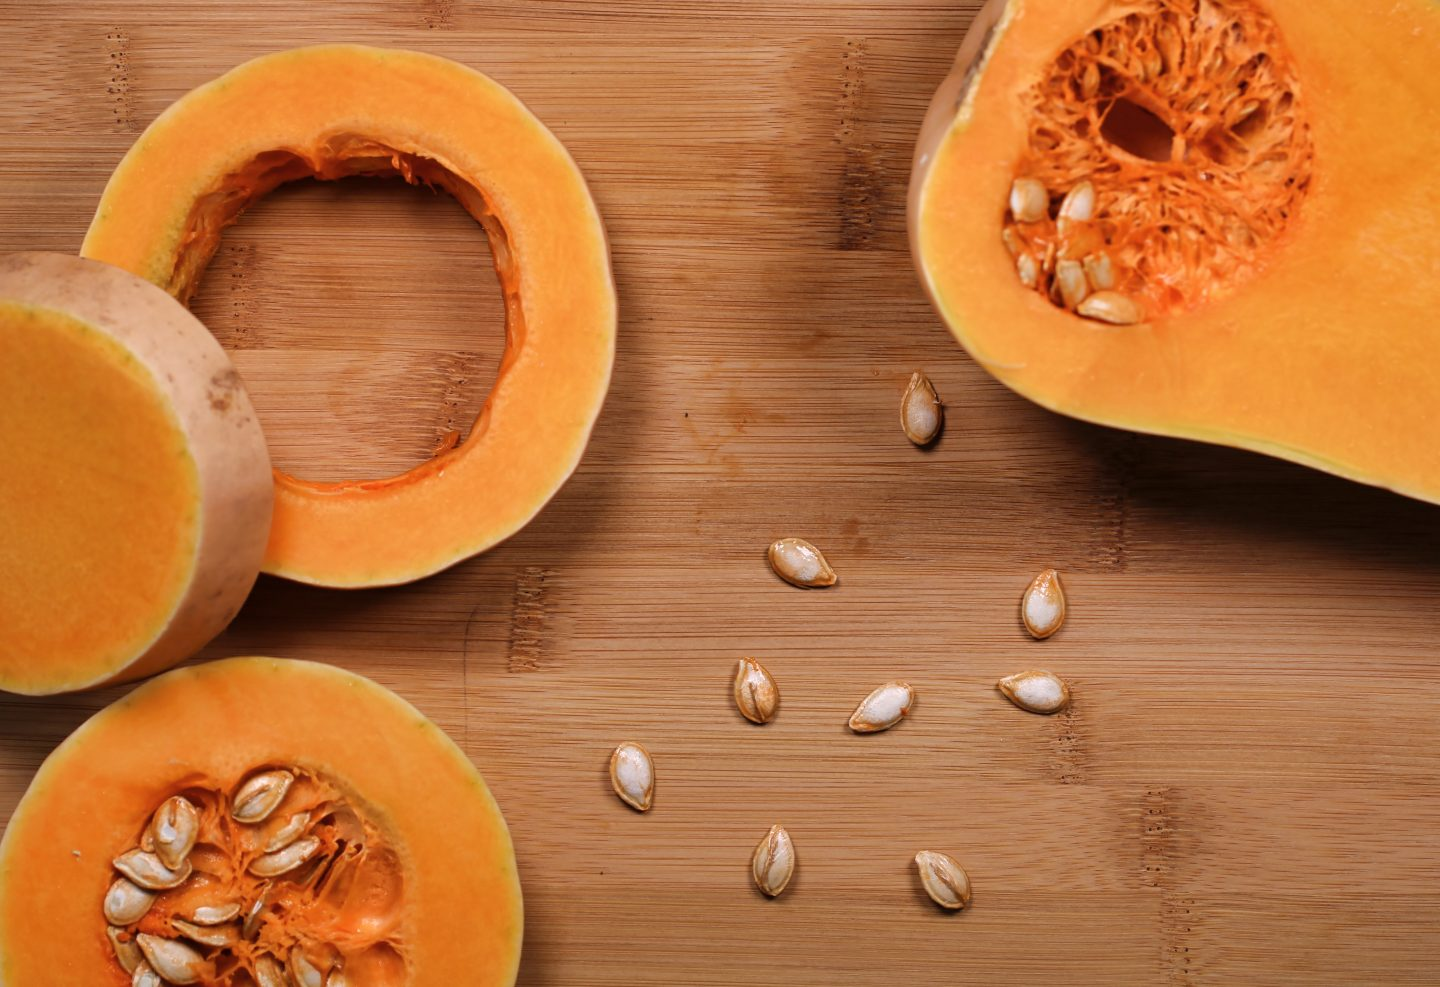 butternut squash sliced on a board with some seeds central